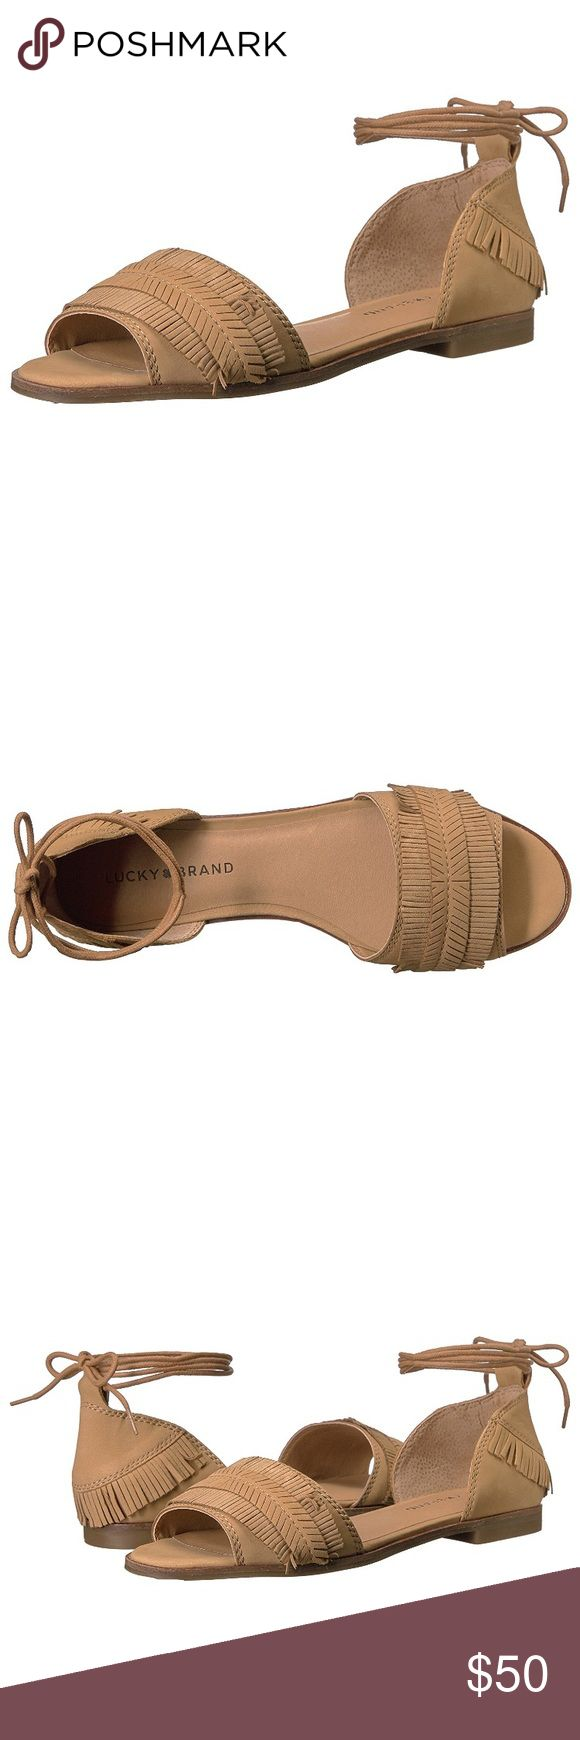 Lucky brand flats peep toe sandals Brand new with box Lucky Brand Shoes